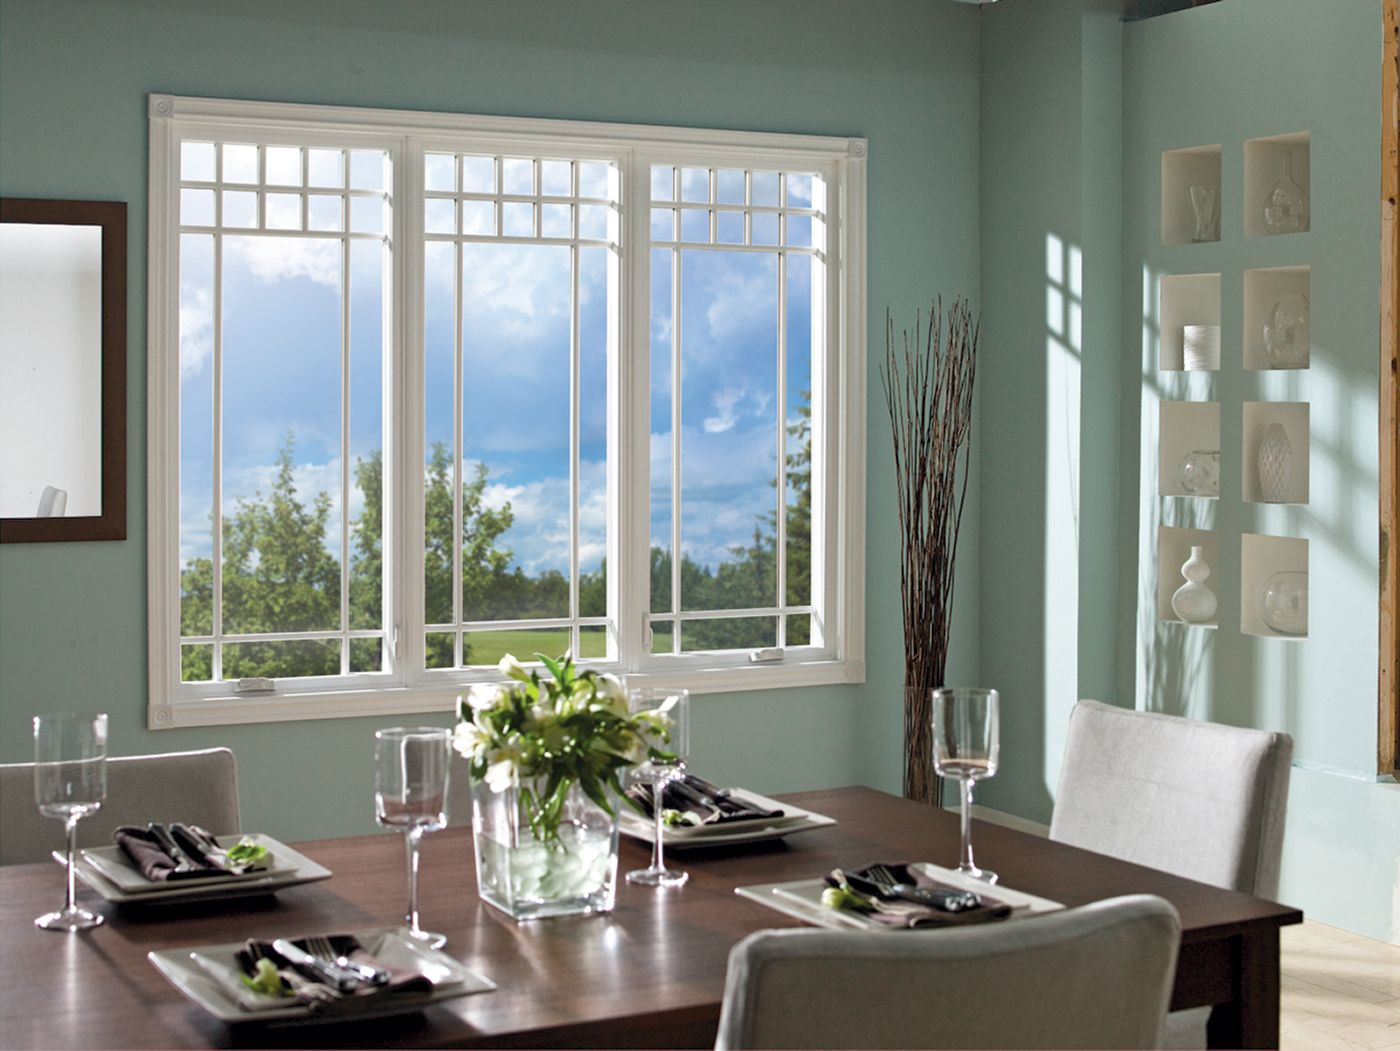 House windows design image 004 exterior paint color home for Window design colour